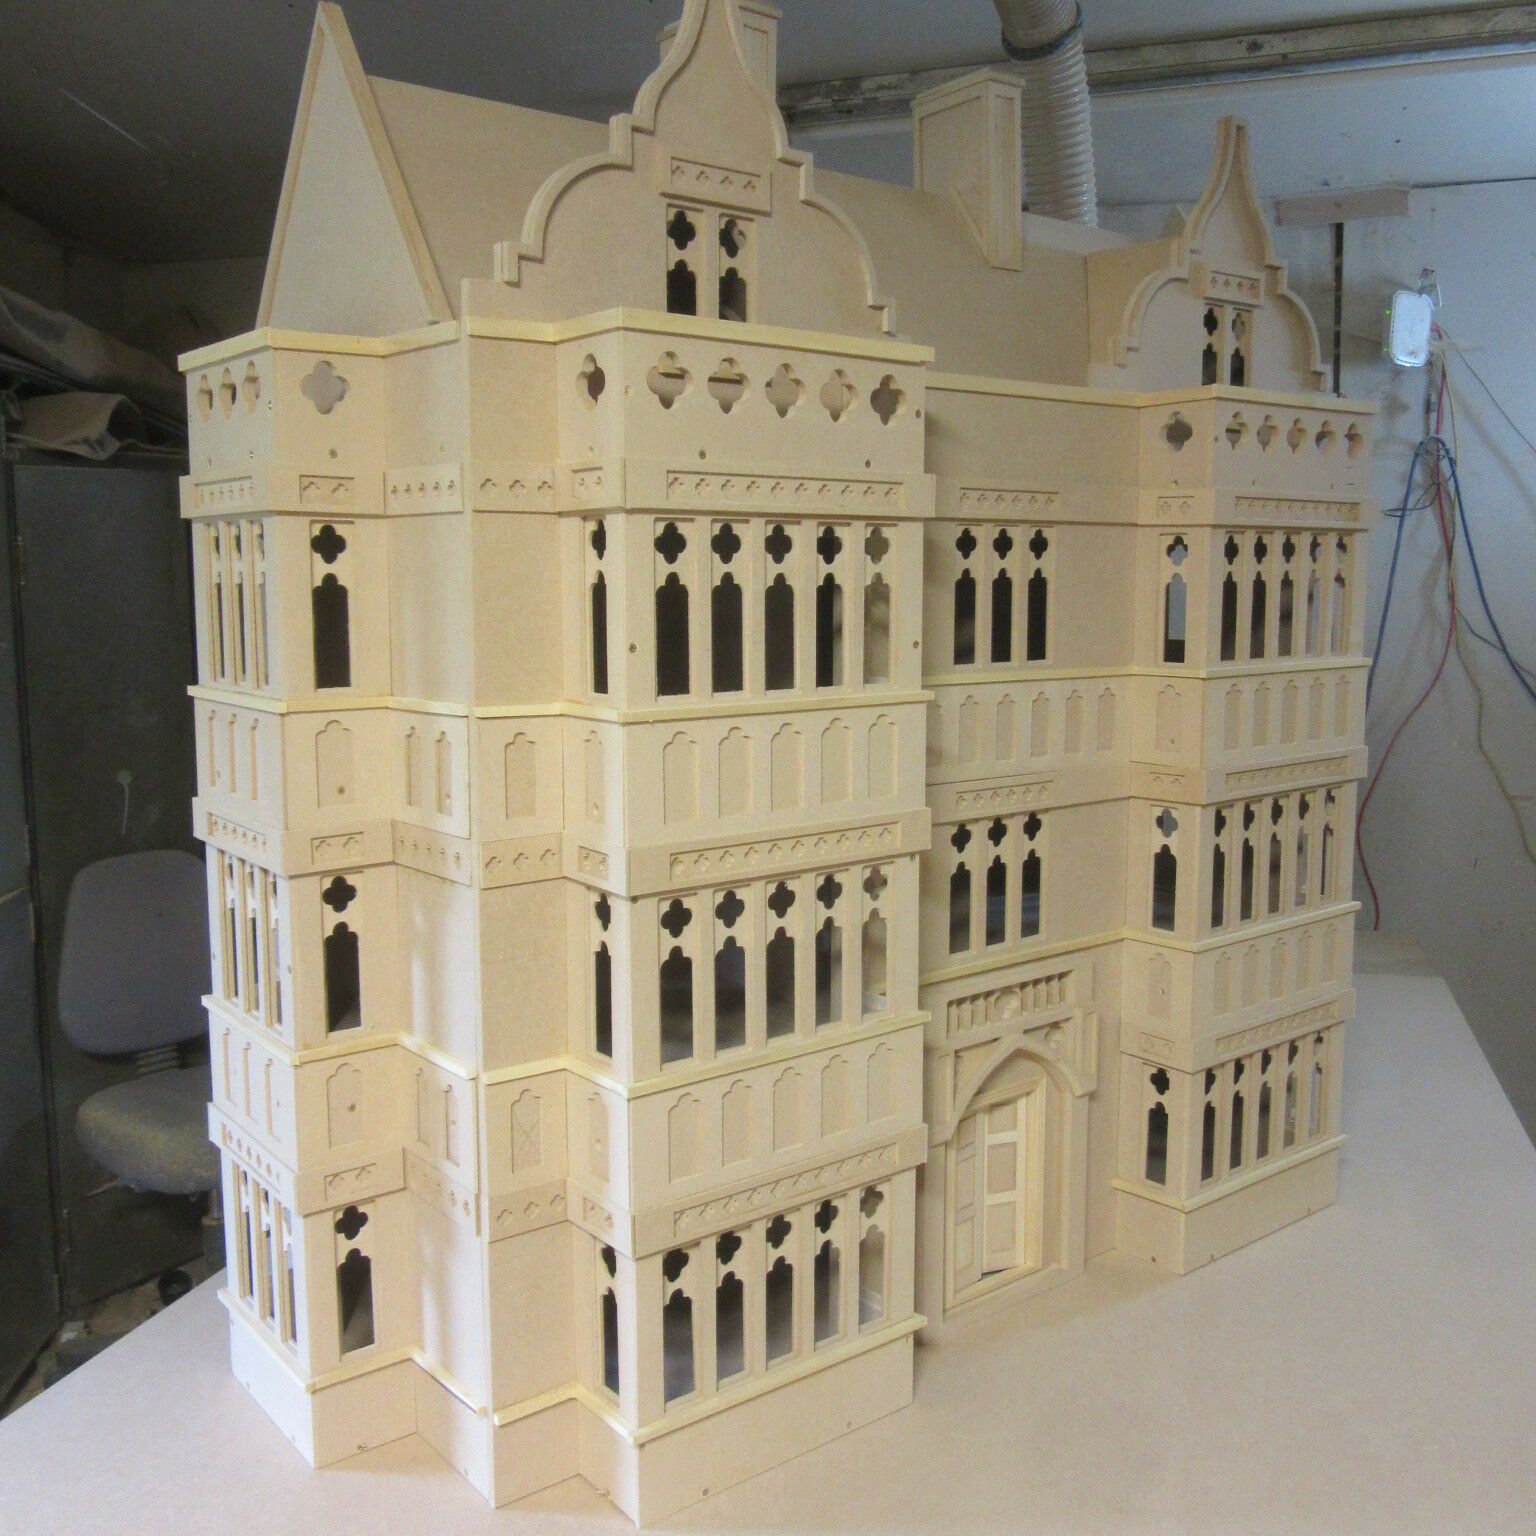 1 12 scale Dolls House The Oxford 9 room House Kit Mediaeval in style by DHD